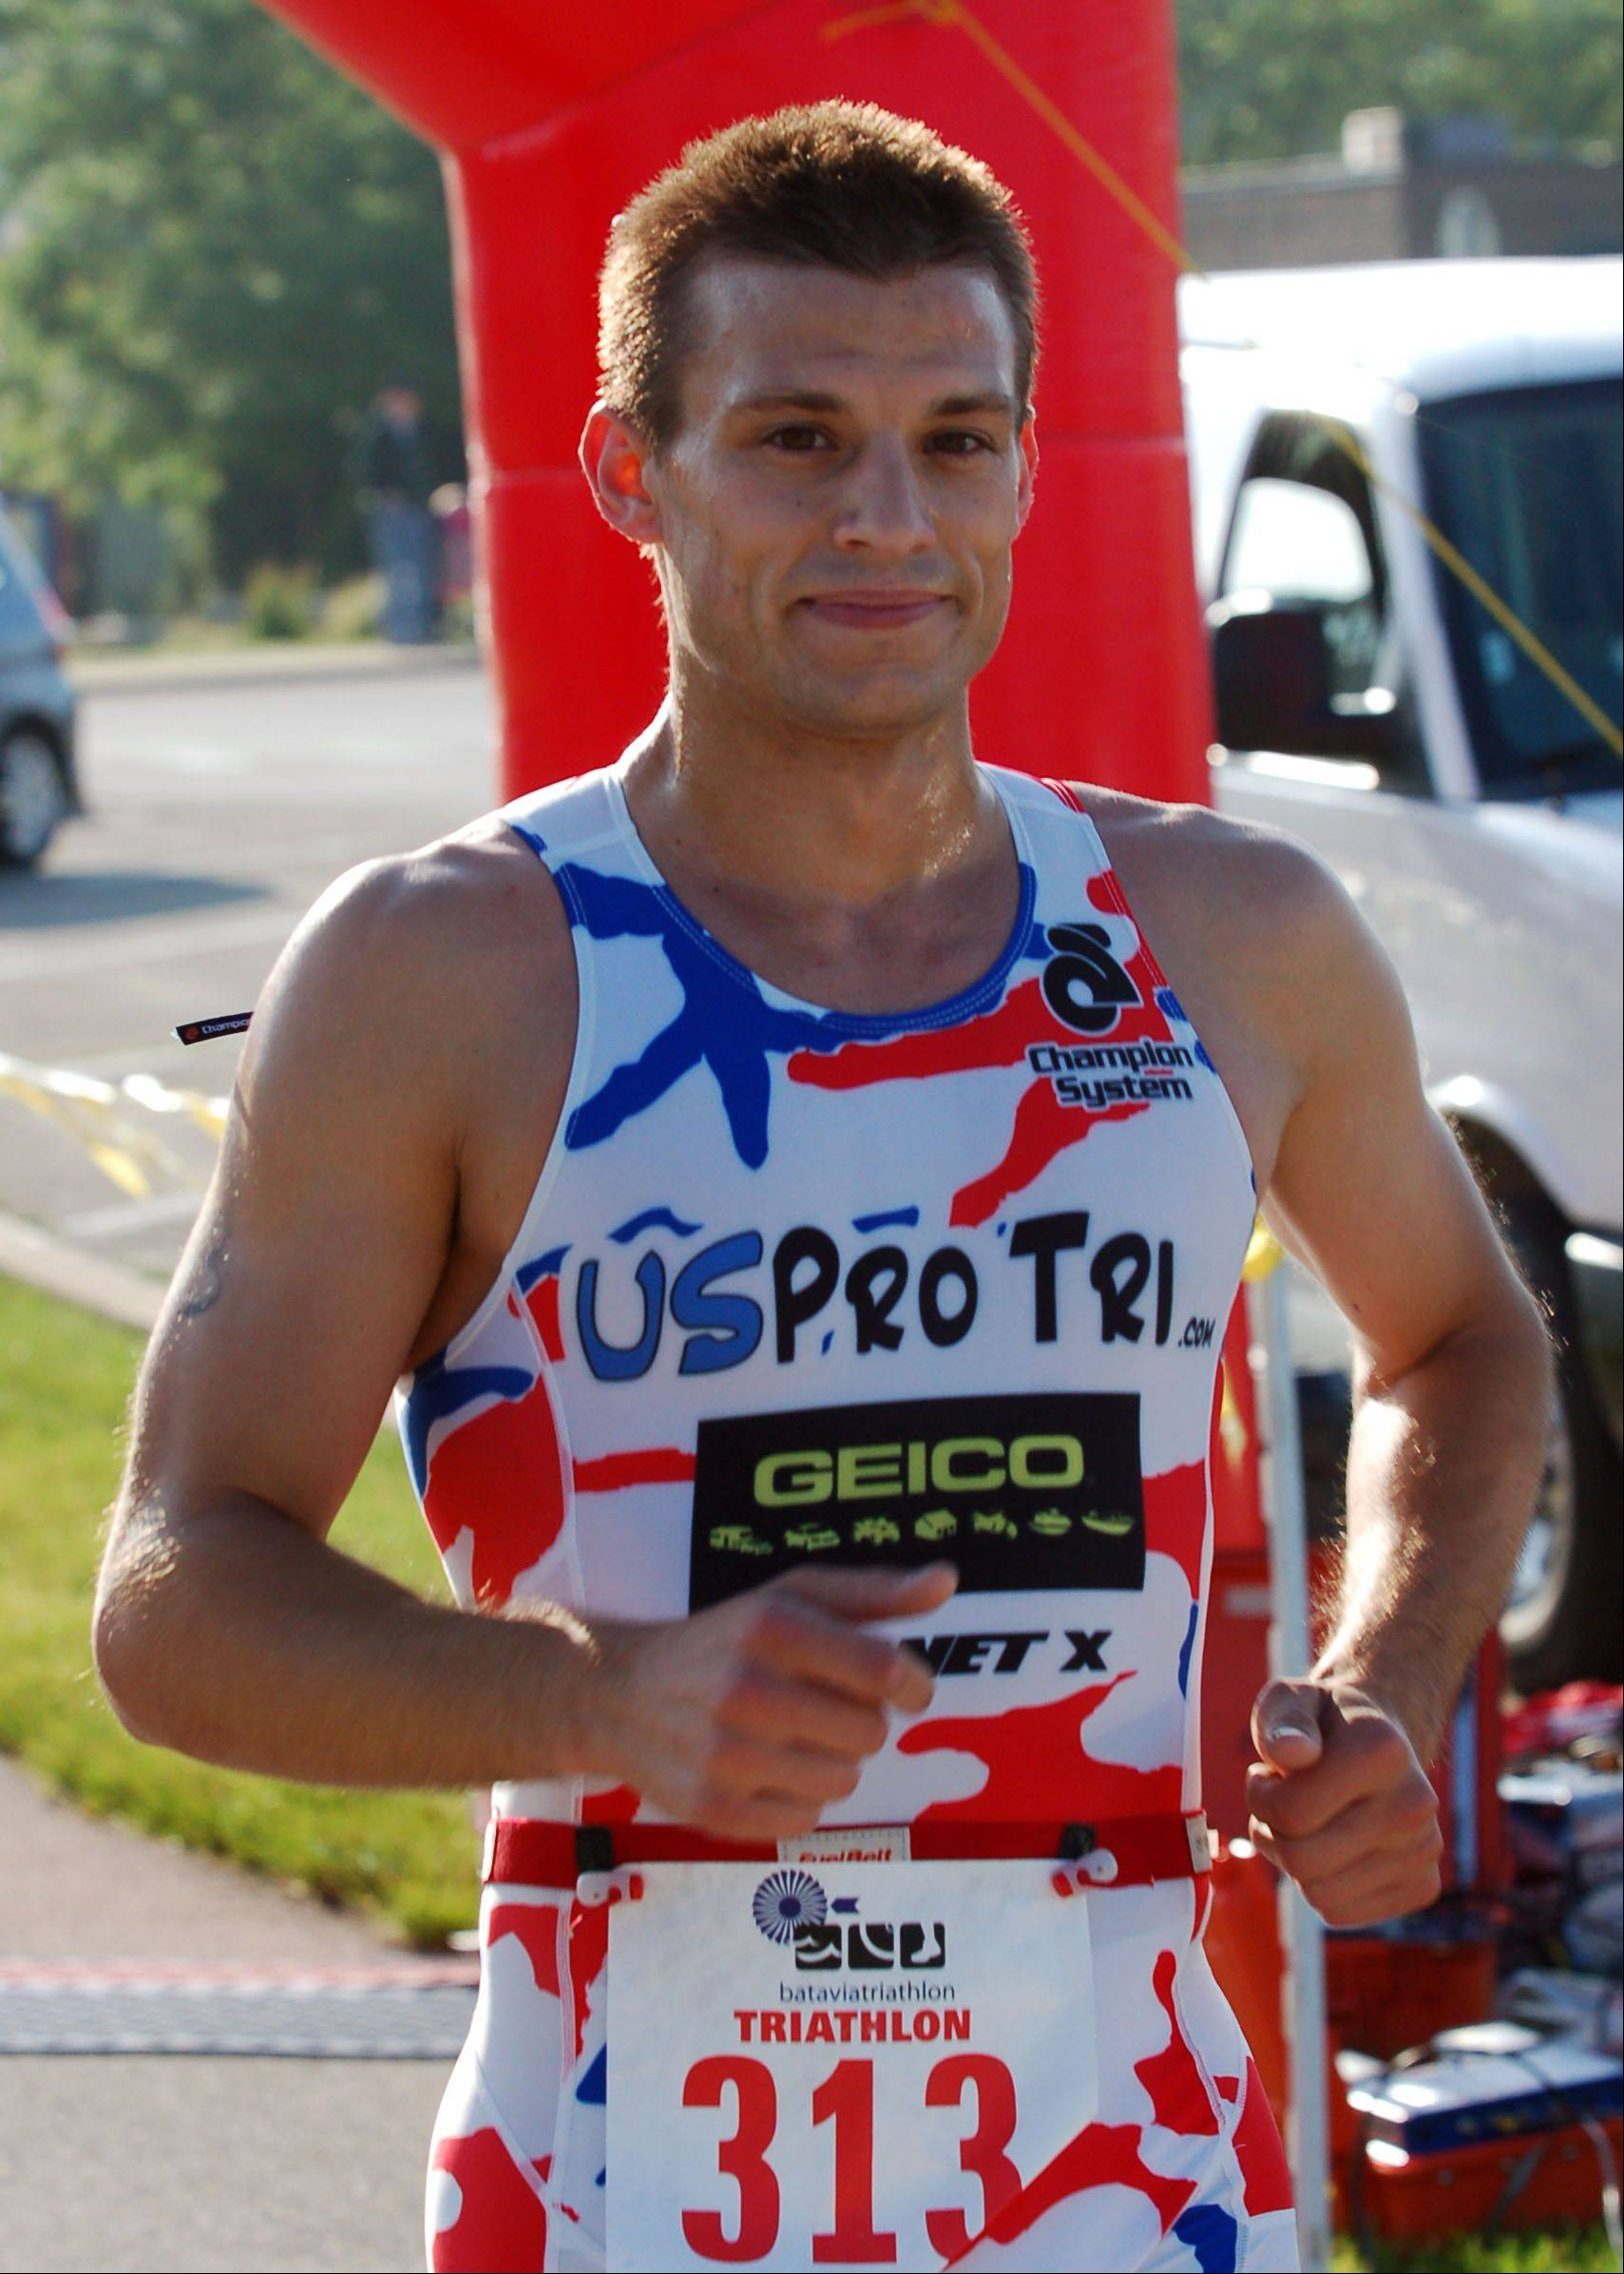 Ryan Giuliano of Schaumburg was first to cross the finish line at last year's Batavia Triathlon, with a time of 1:02.26.